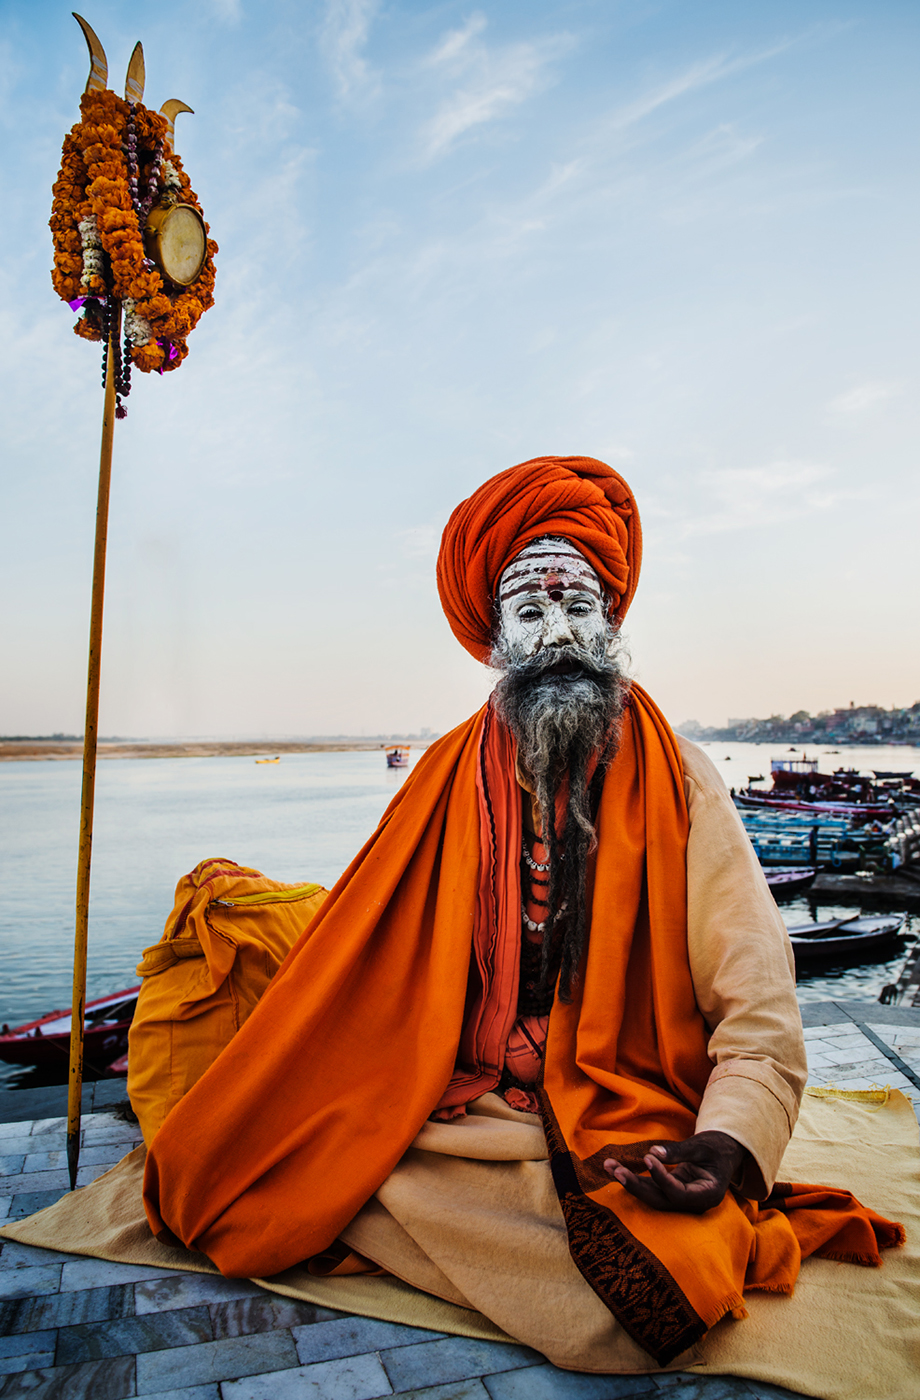 Praying man at Hindu temple on the Ganges in Varanasi shot by Michael Marquand for Lodestars Anthology